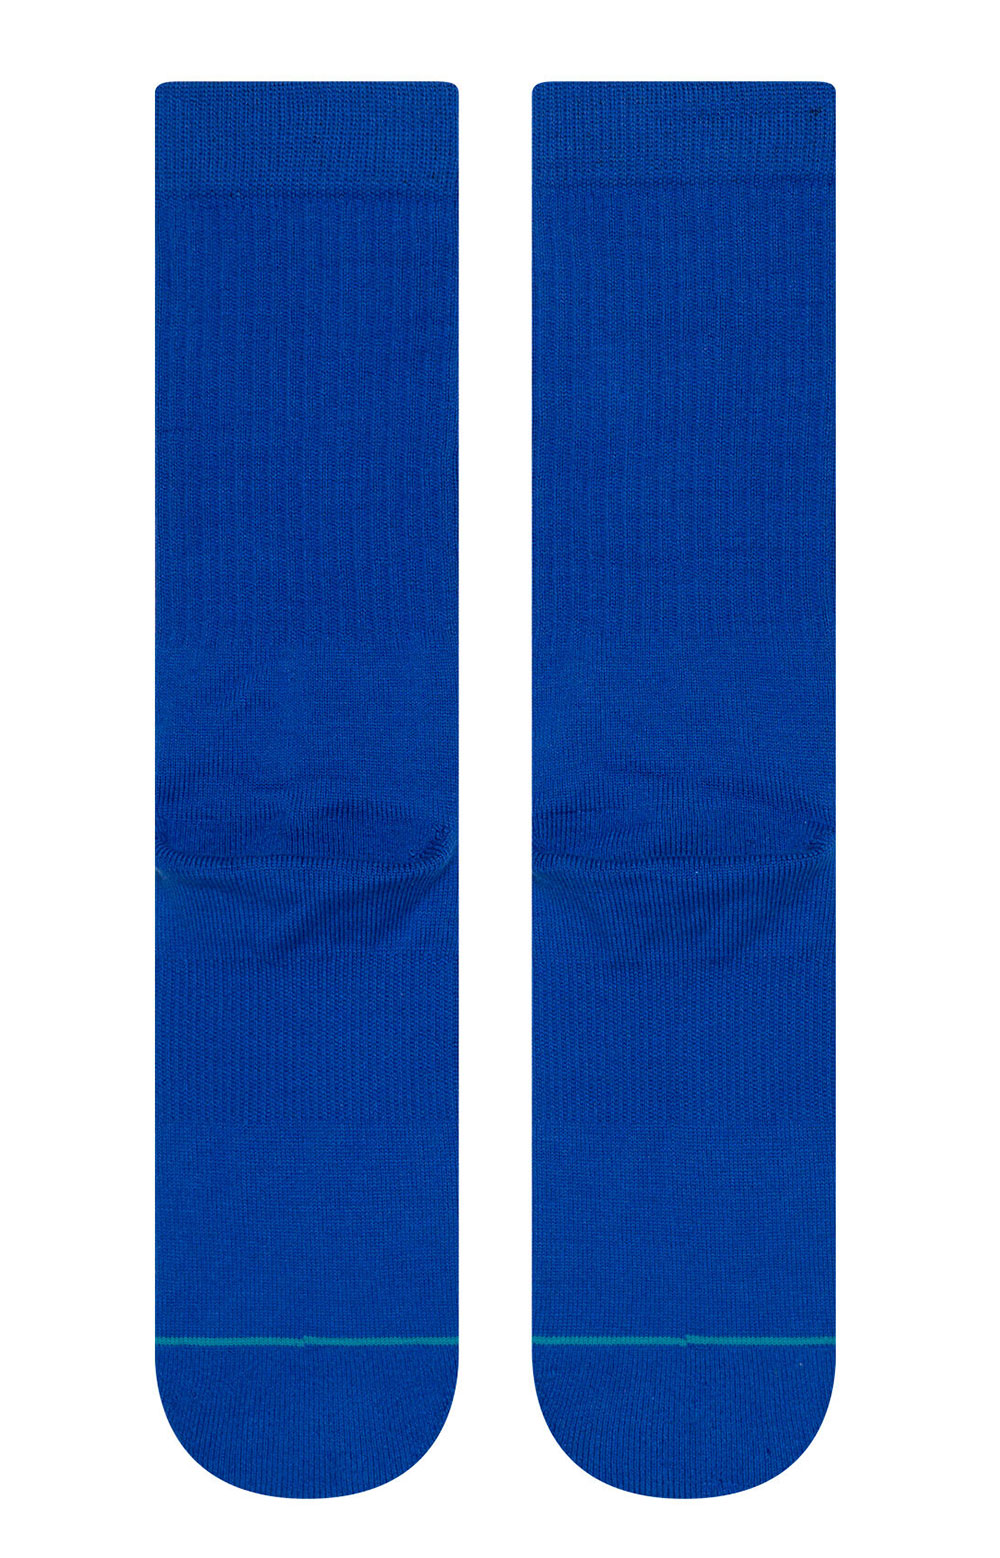 Icon Socks - Cobalt Blue 3